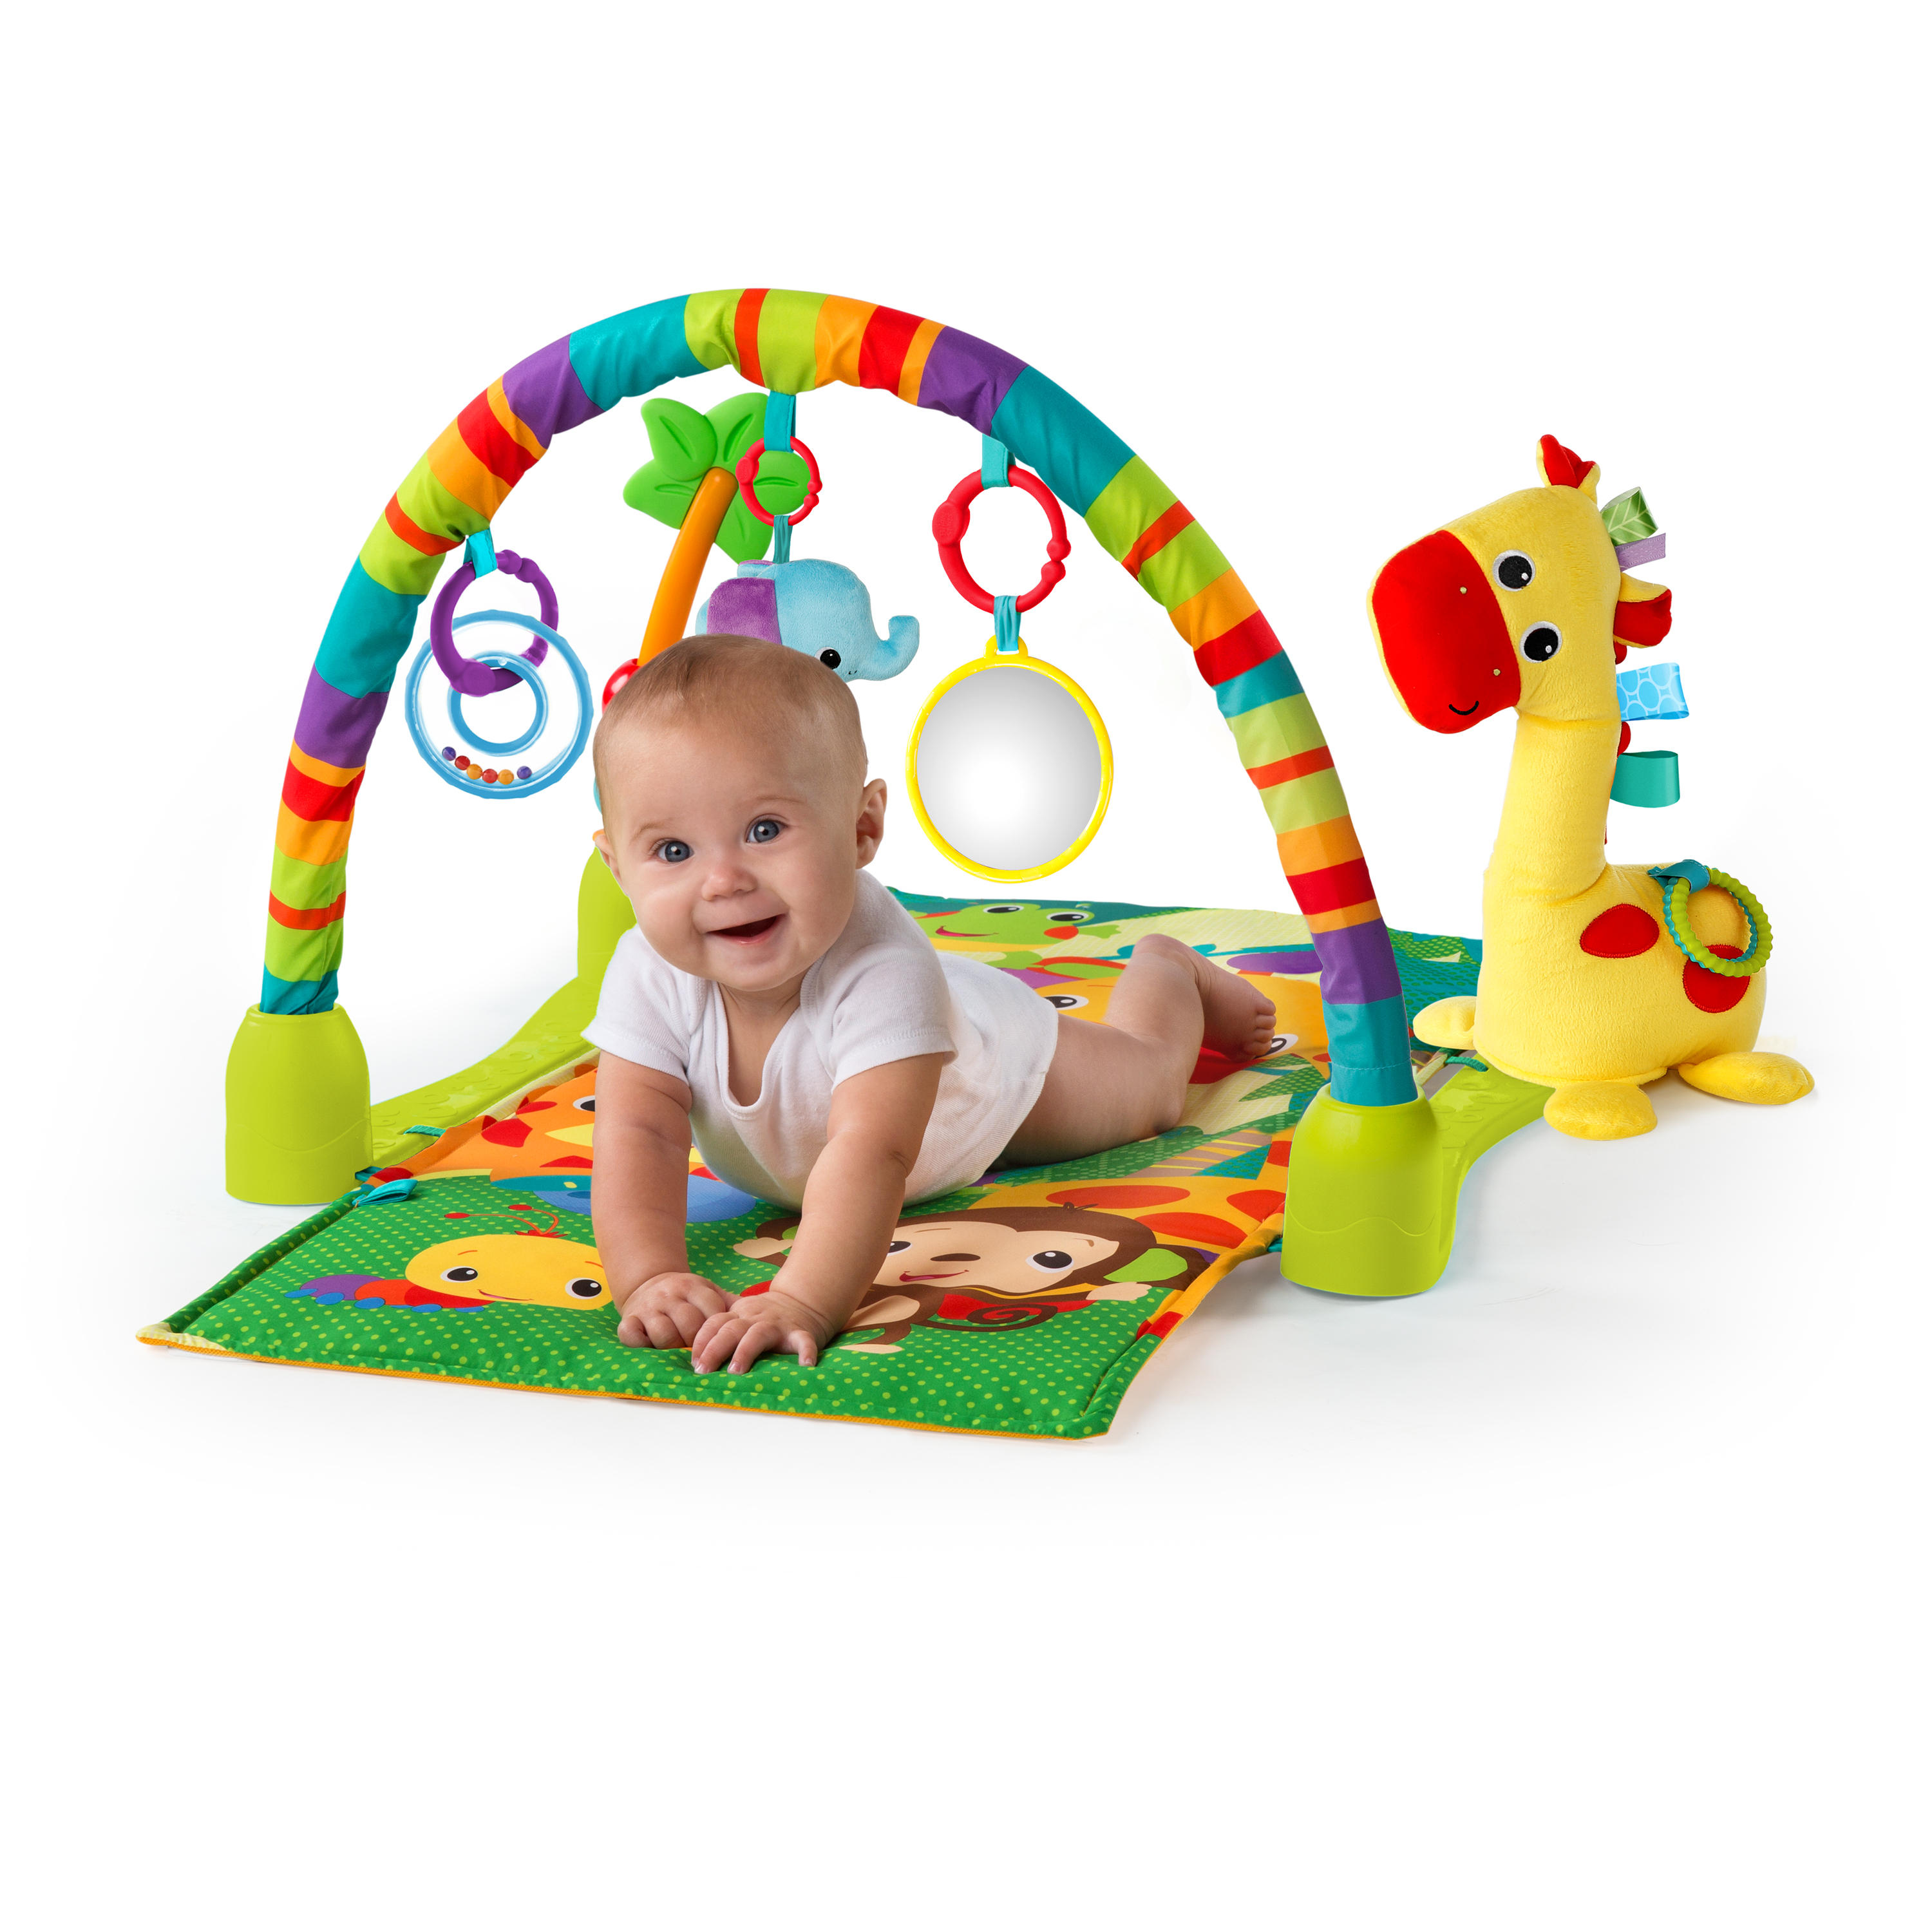 4-in-1 Jungle Discovery™ Activity Gym